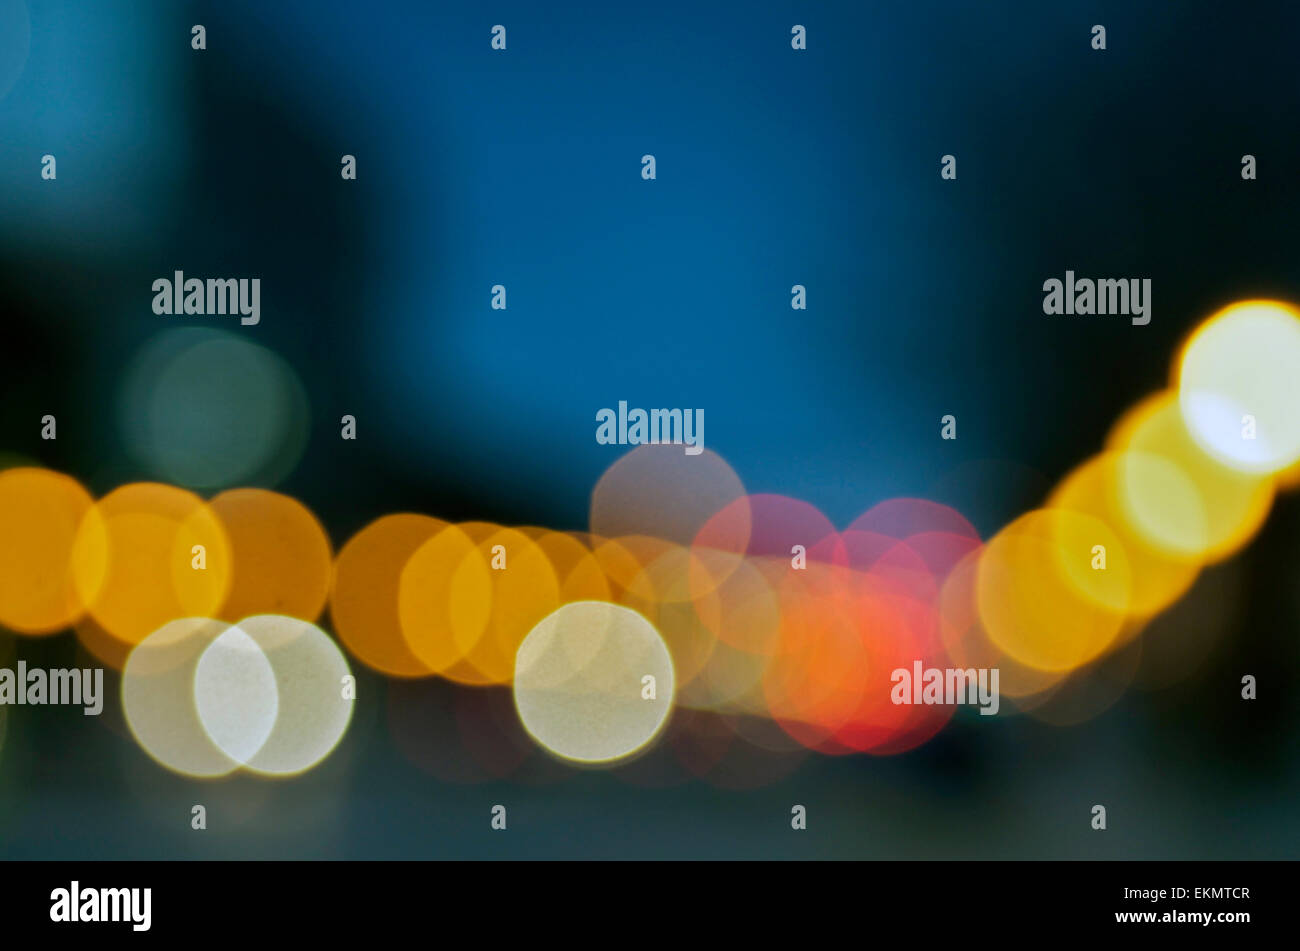 Unfocused lights in orange and yellow. - Stock Image